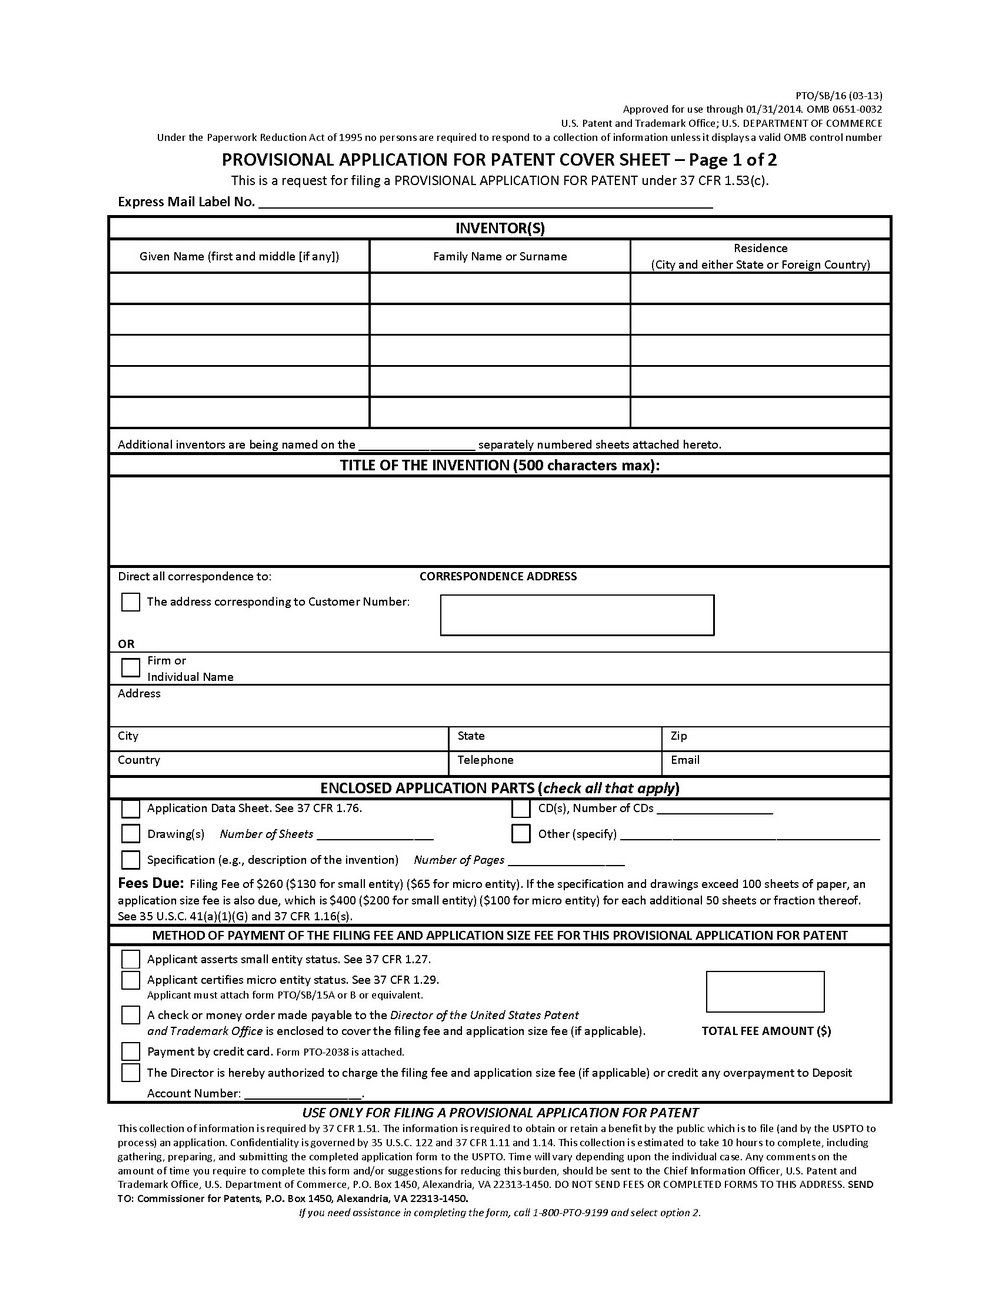 Provisional Patent Form